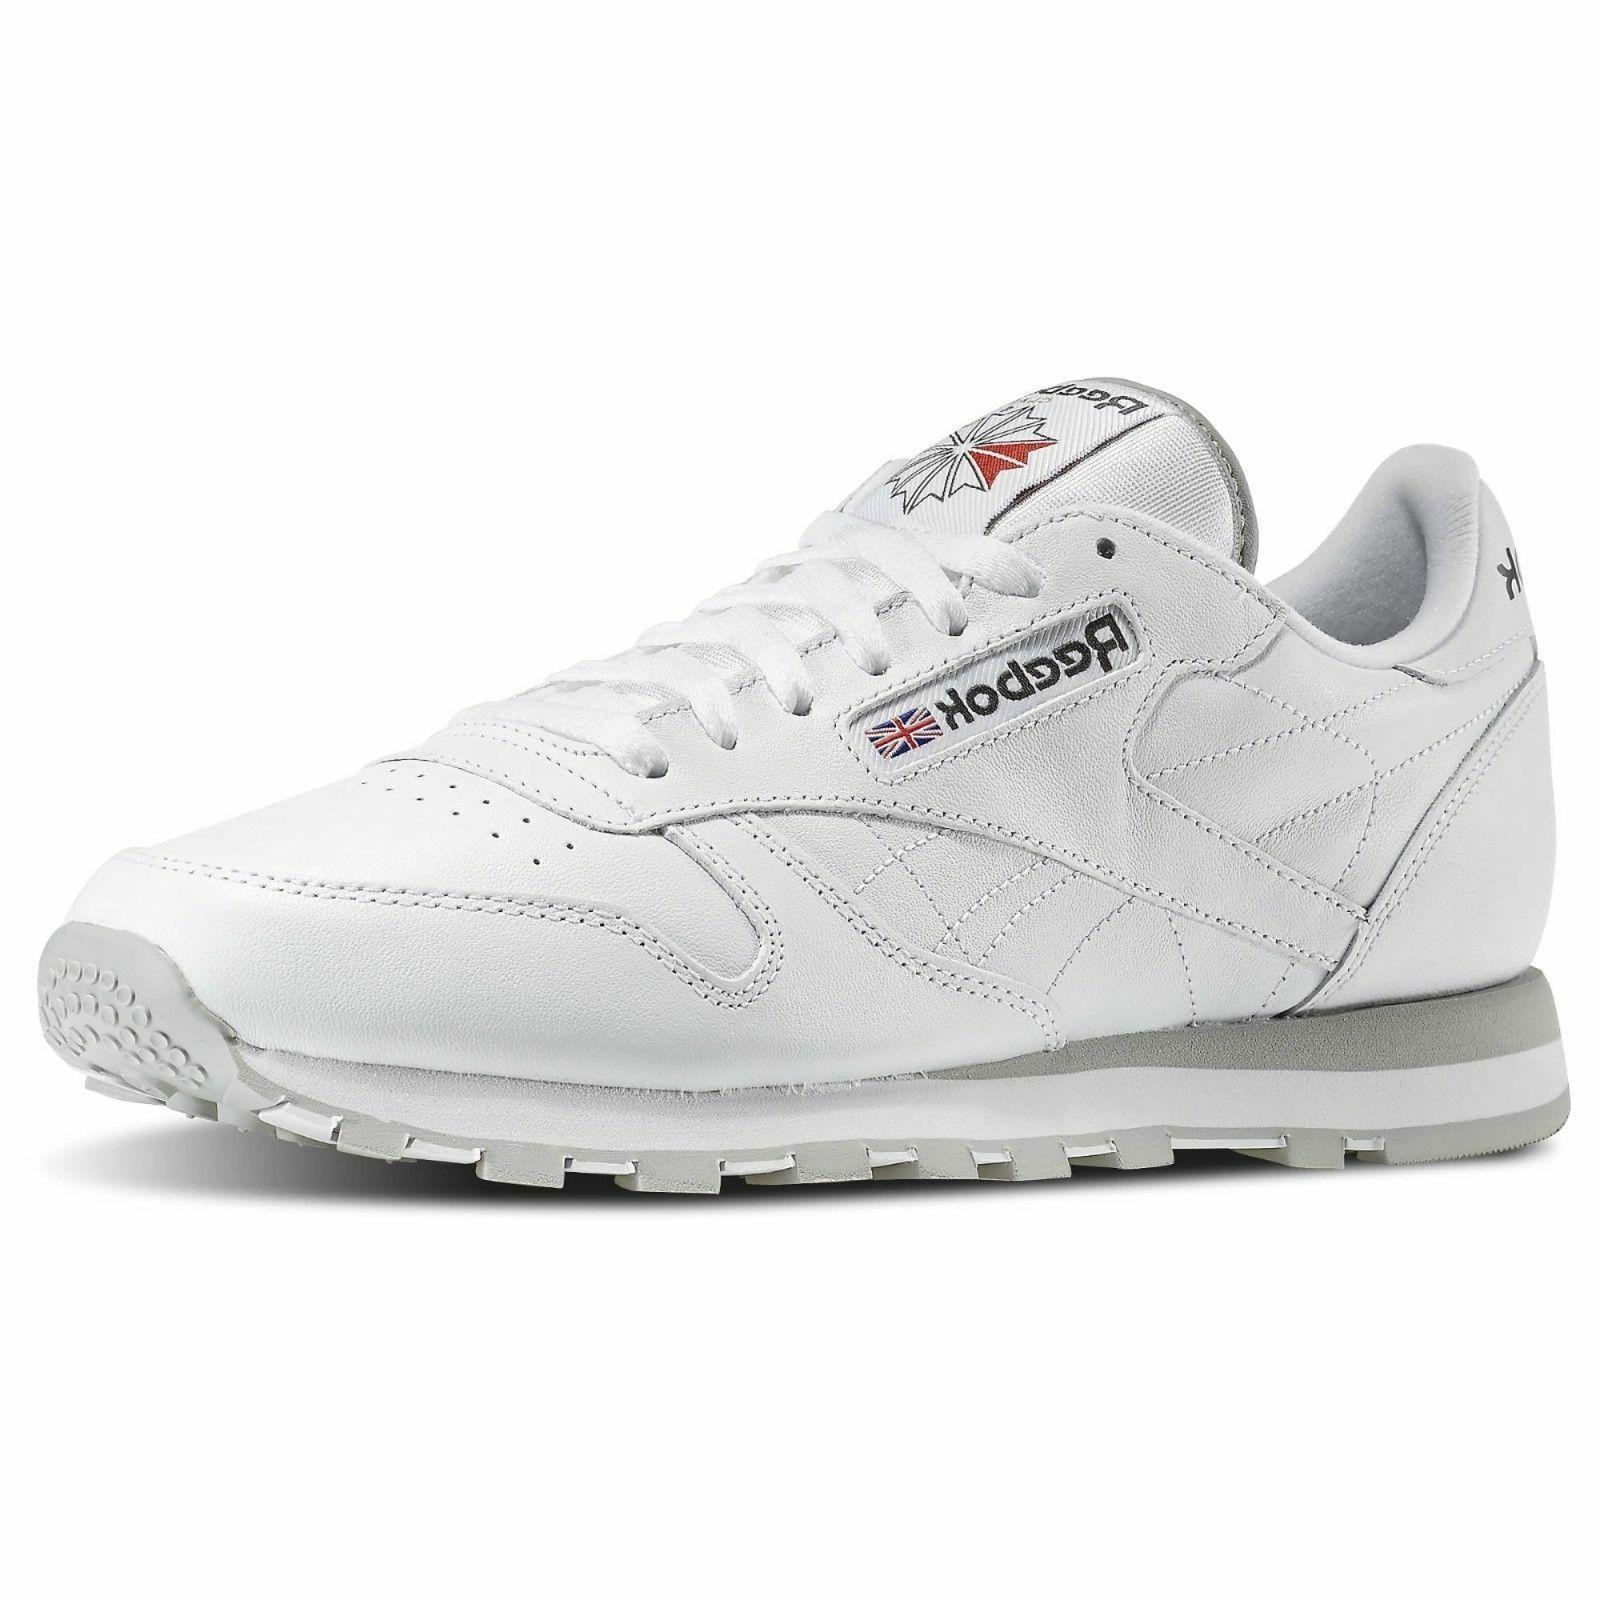 Reebok Classic Leather 101 White Grey Red Mens Shoes Fashion